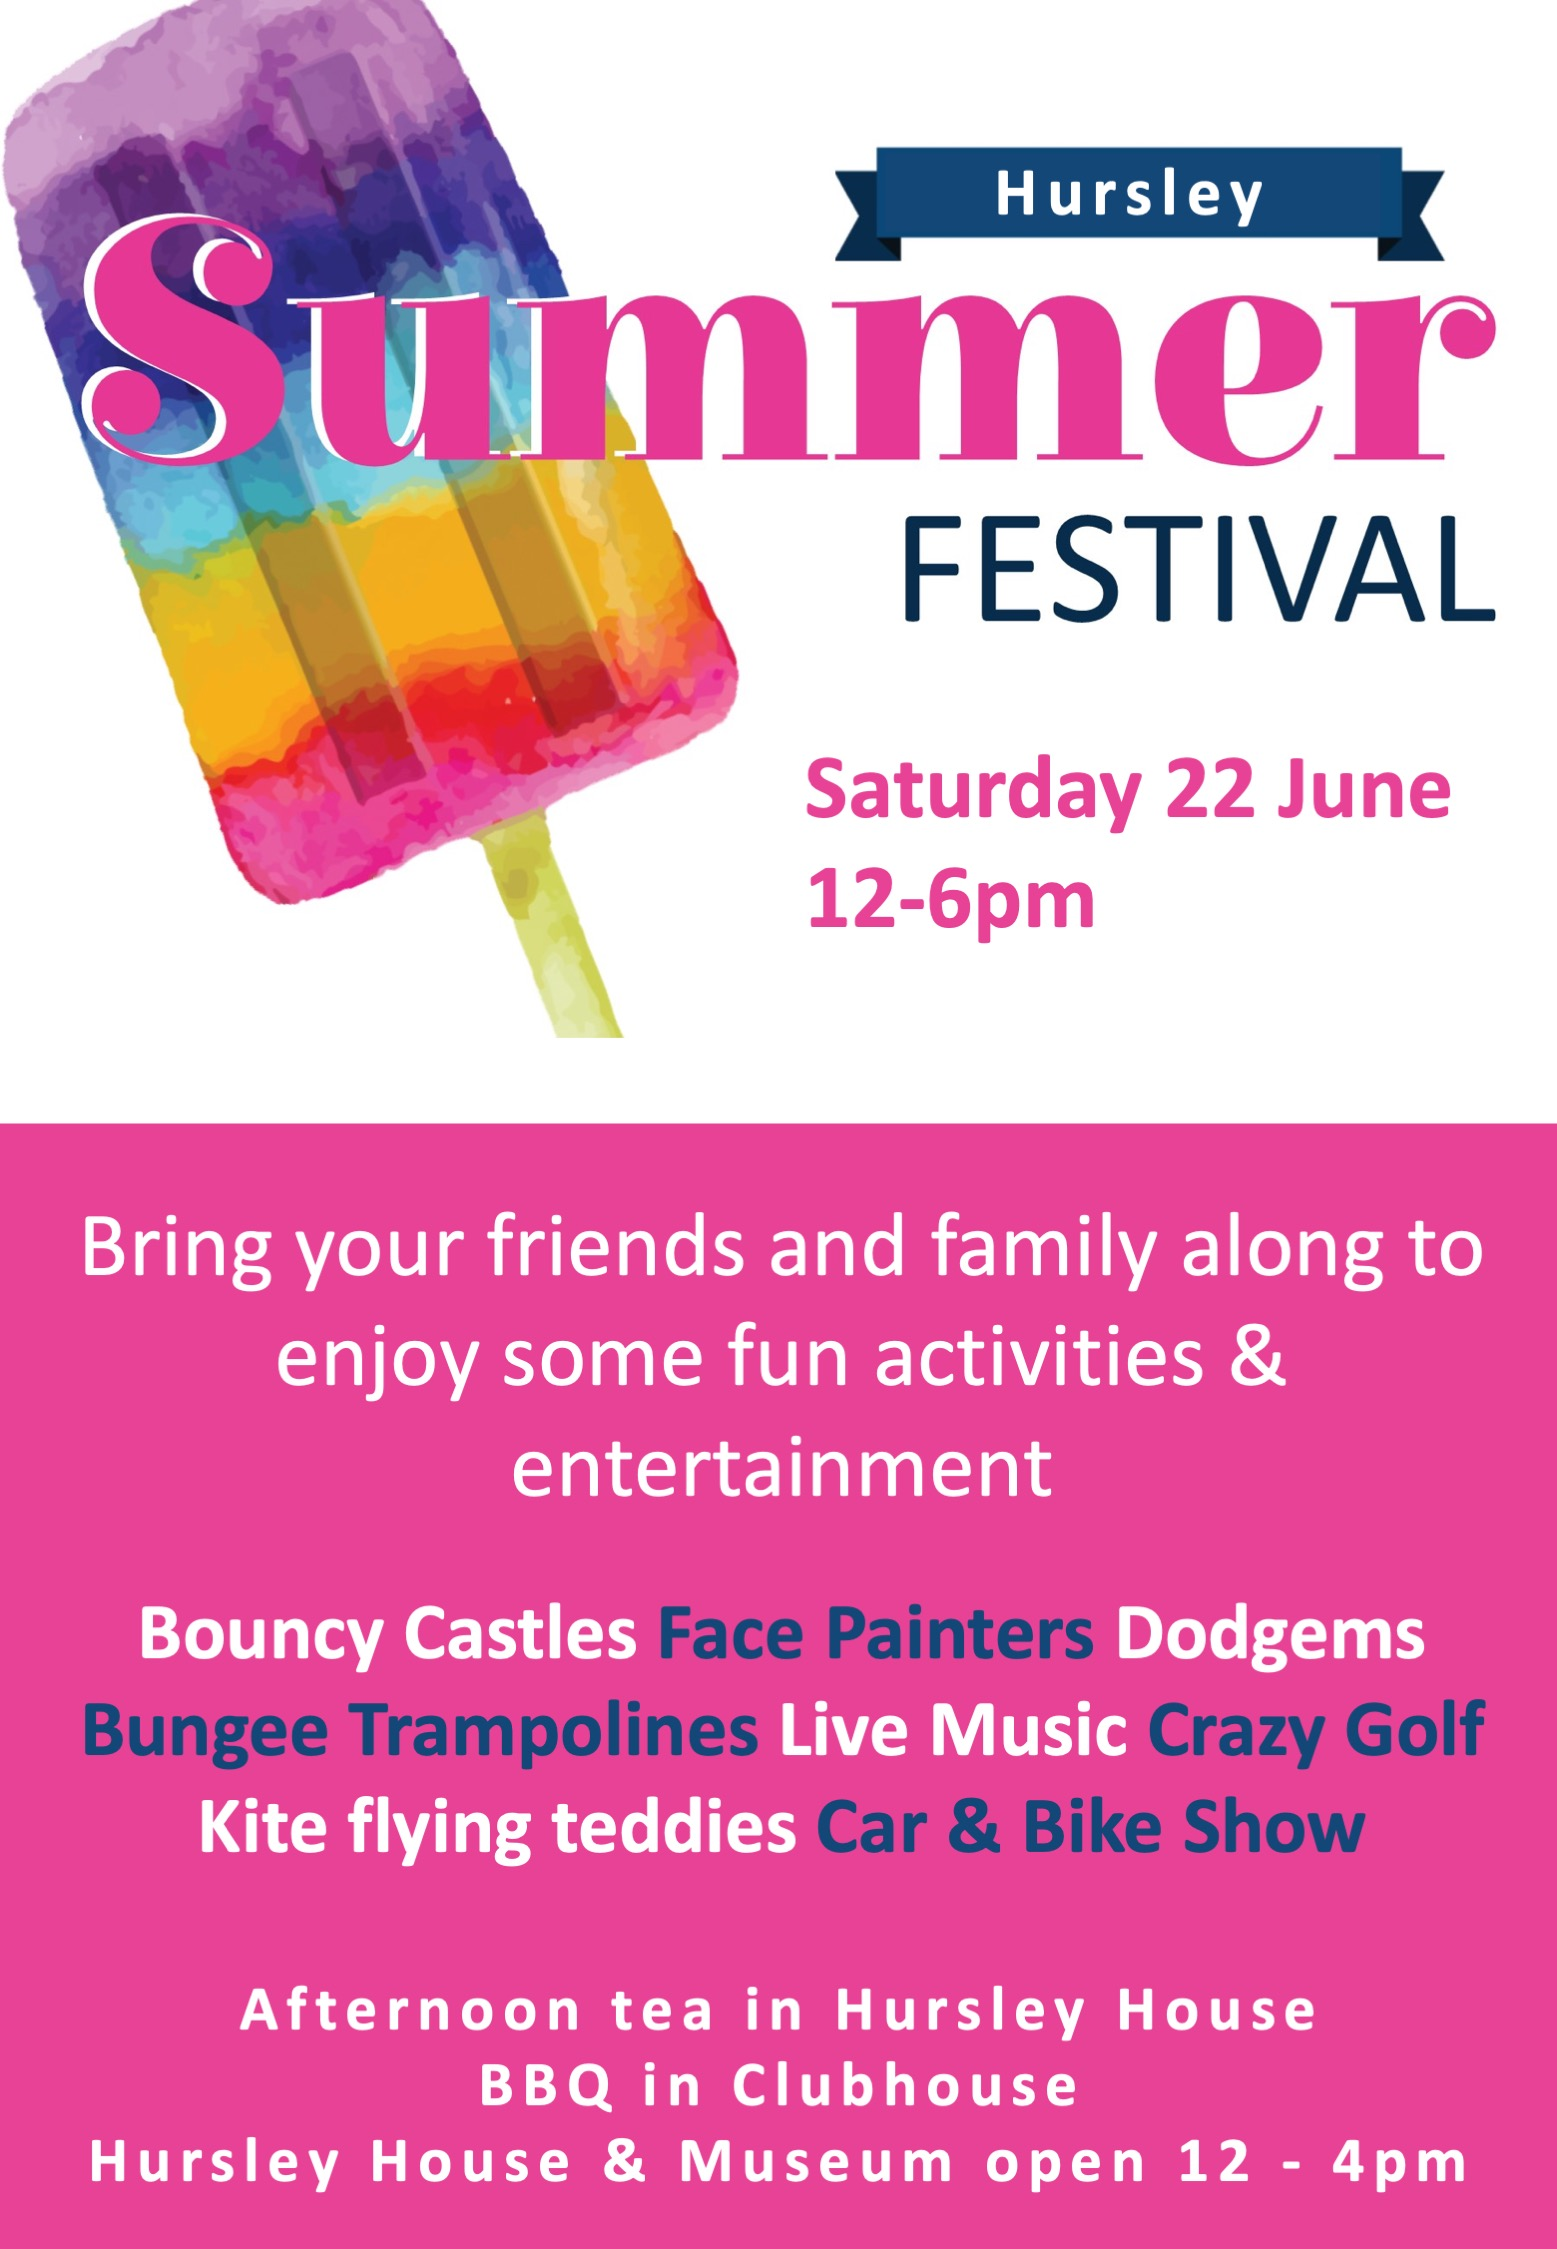 Hursley Summer Festival 2019